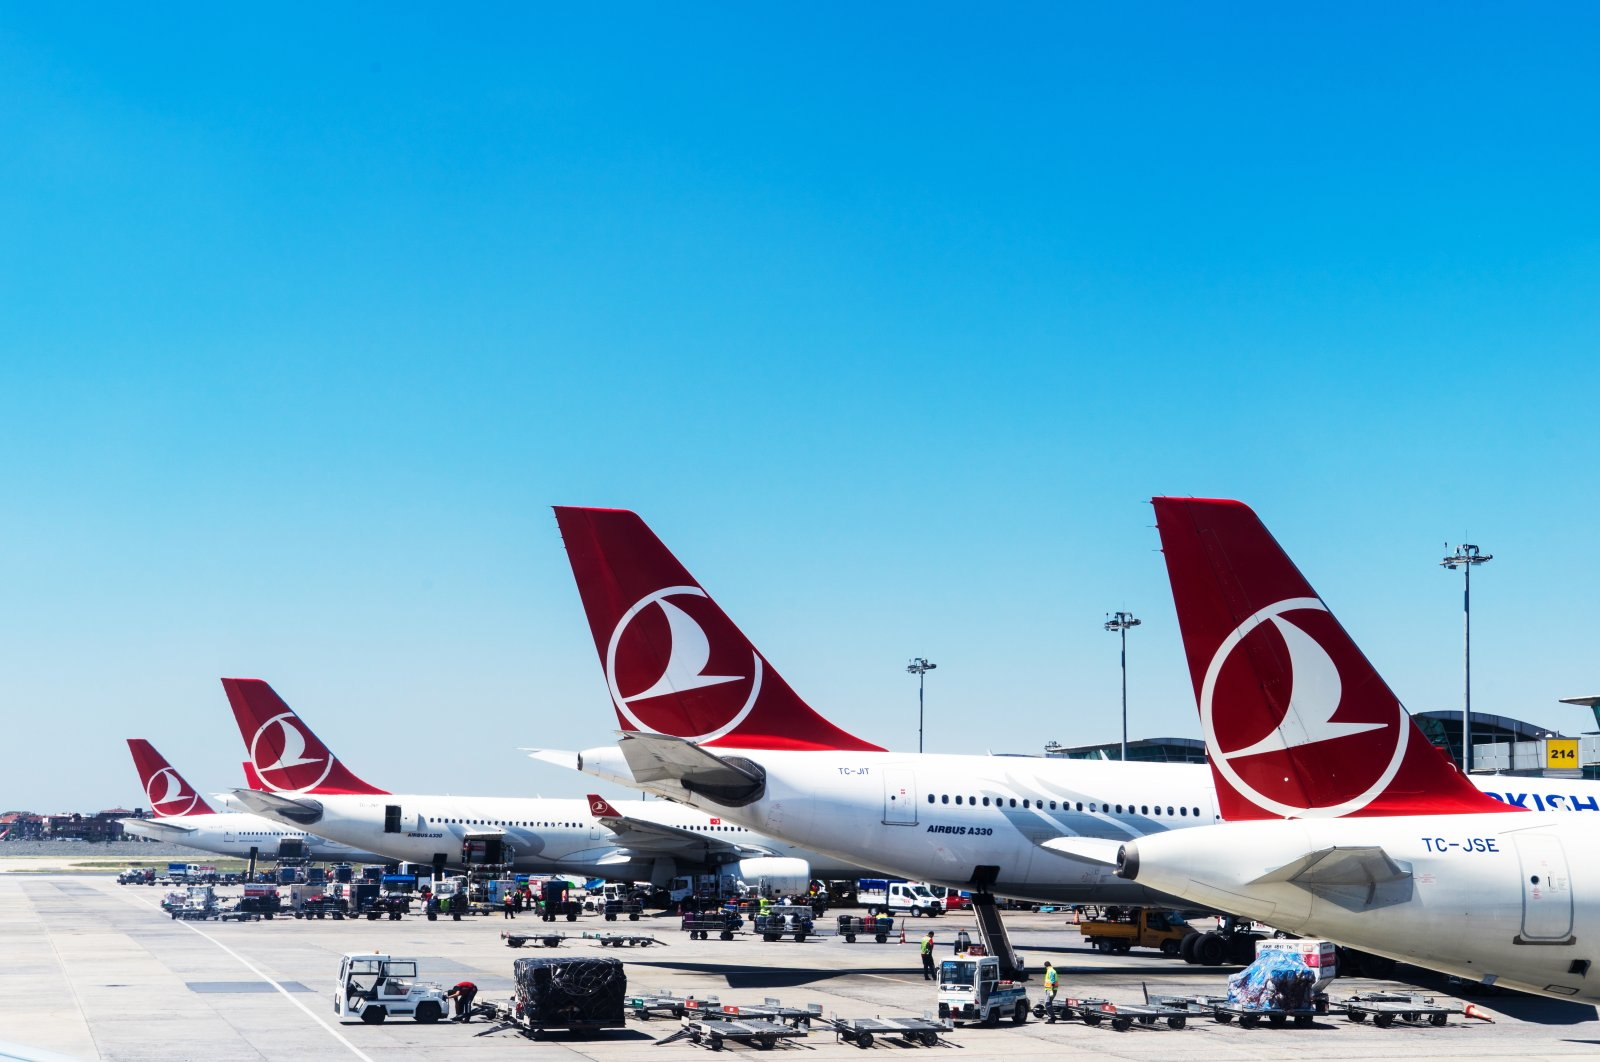 Turkish Airlines aircraft parked in the now-closed Atatürk Airport, Istanbul, Turkey, May 1, 2016. (Shutterstock Photo)